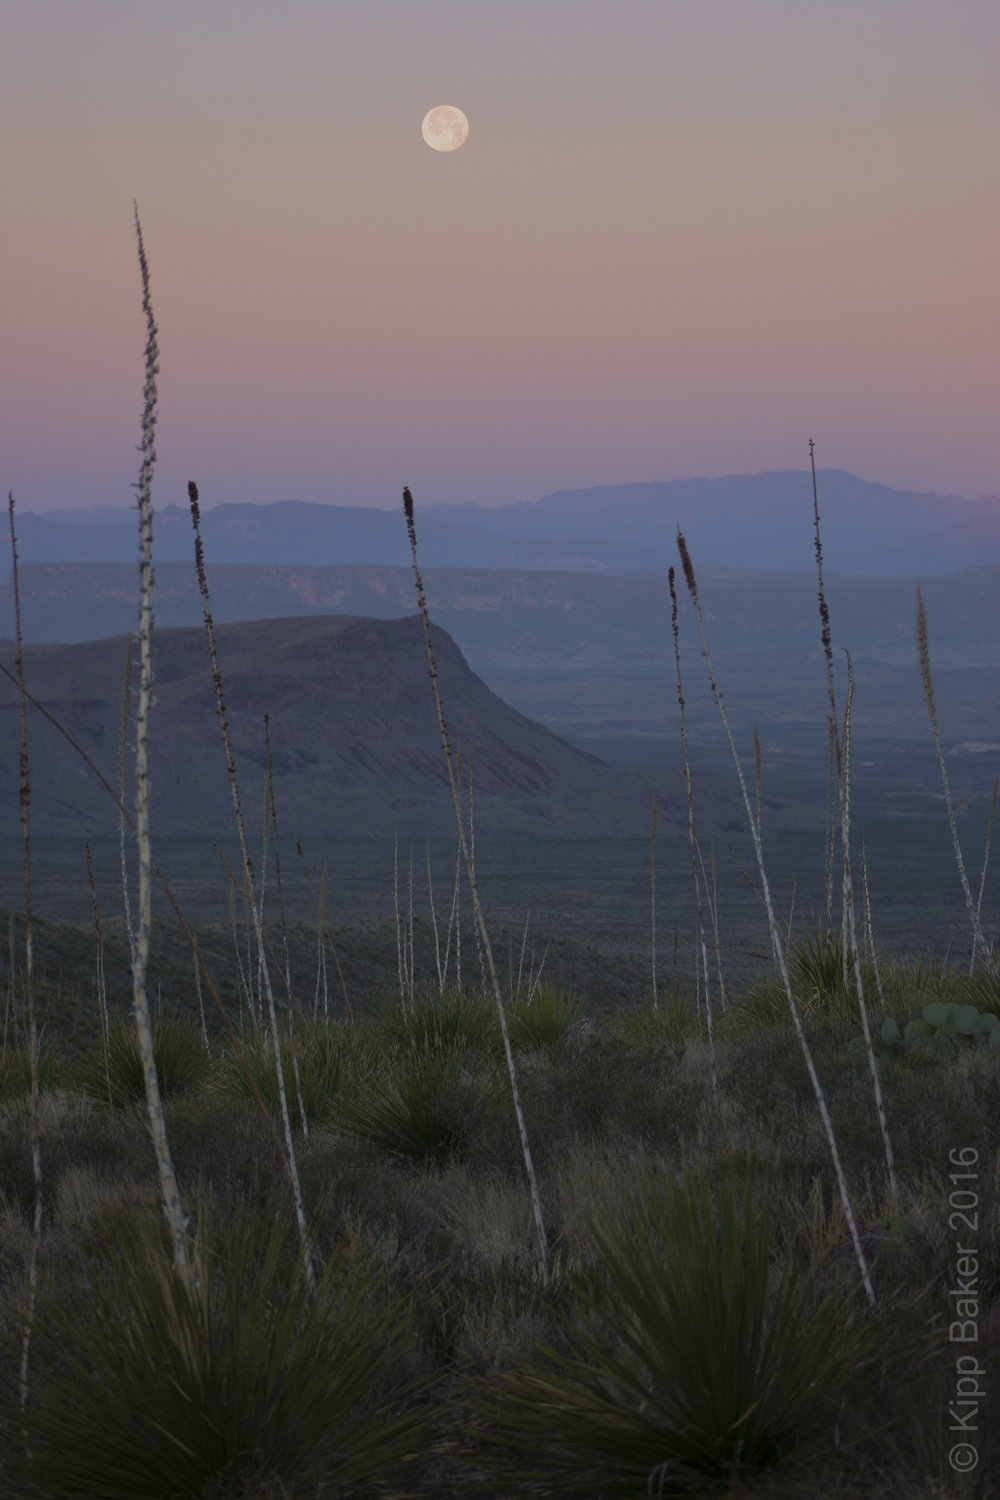 Moonset at dawn, Sotol Vista, Big Bend National Park Copyright © Kipp Baker, All rights reserved.